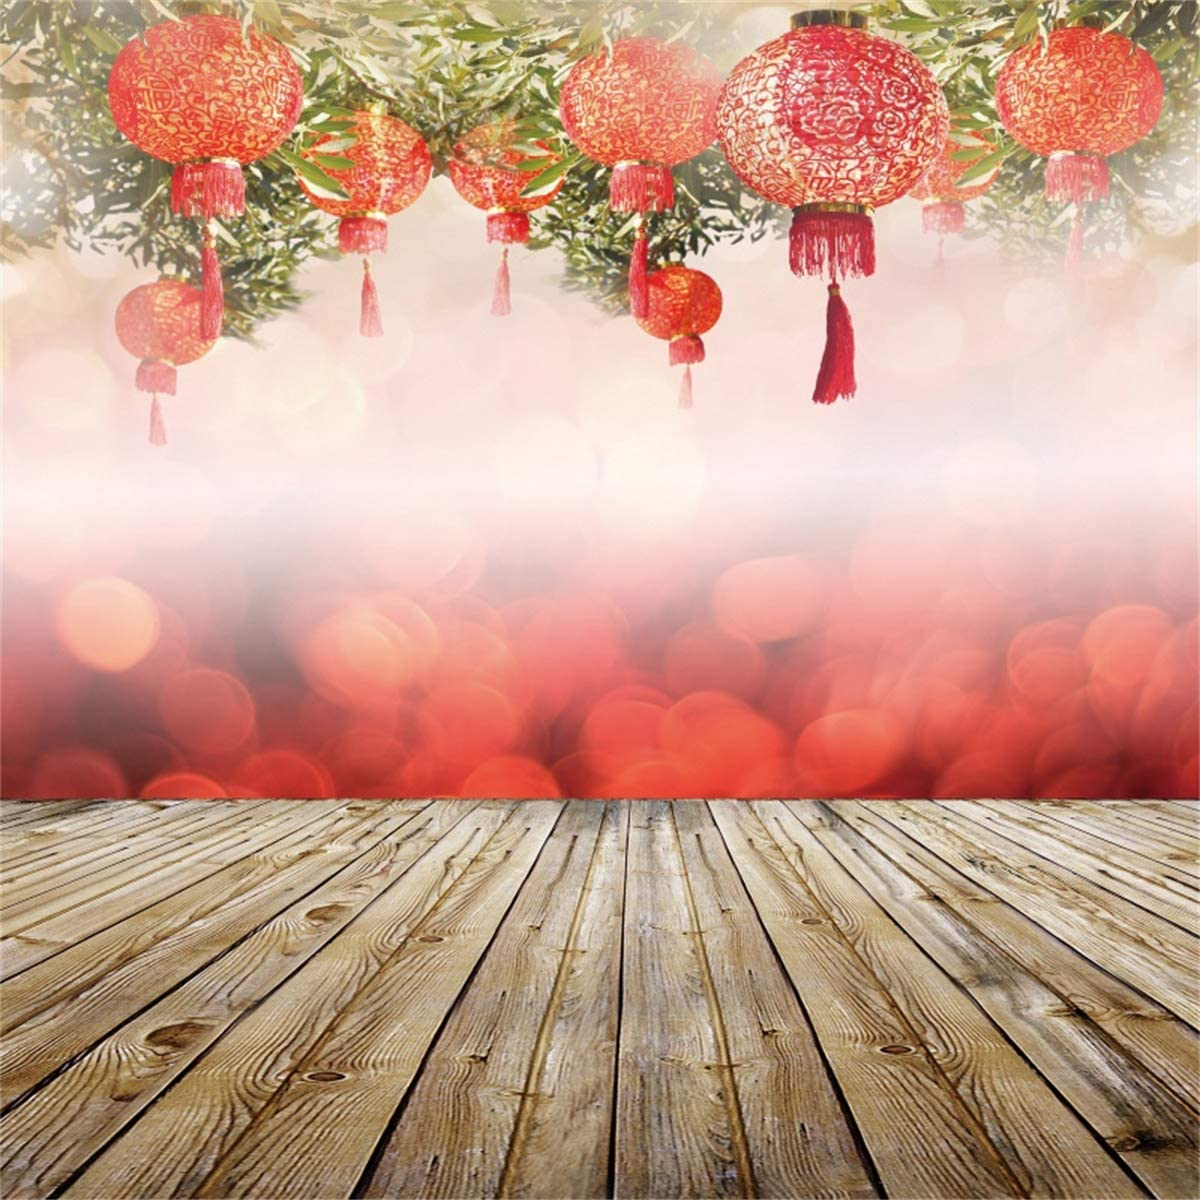 Yeele Chinese Red Lantern Backdrop Vintage Wooden Floor Spring Festival Photography Background Kids Artistic Portrait 10x10ft 2020 New Year Events Photo Booth Photoshoot Studio Wallpaper